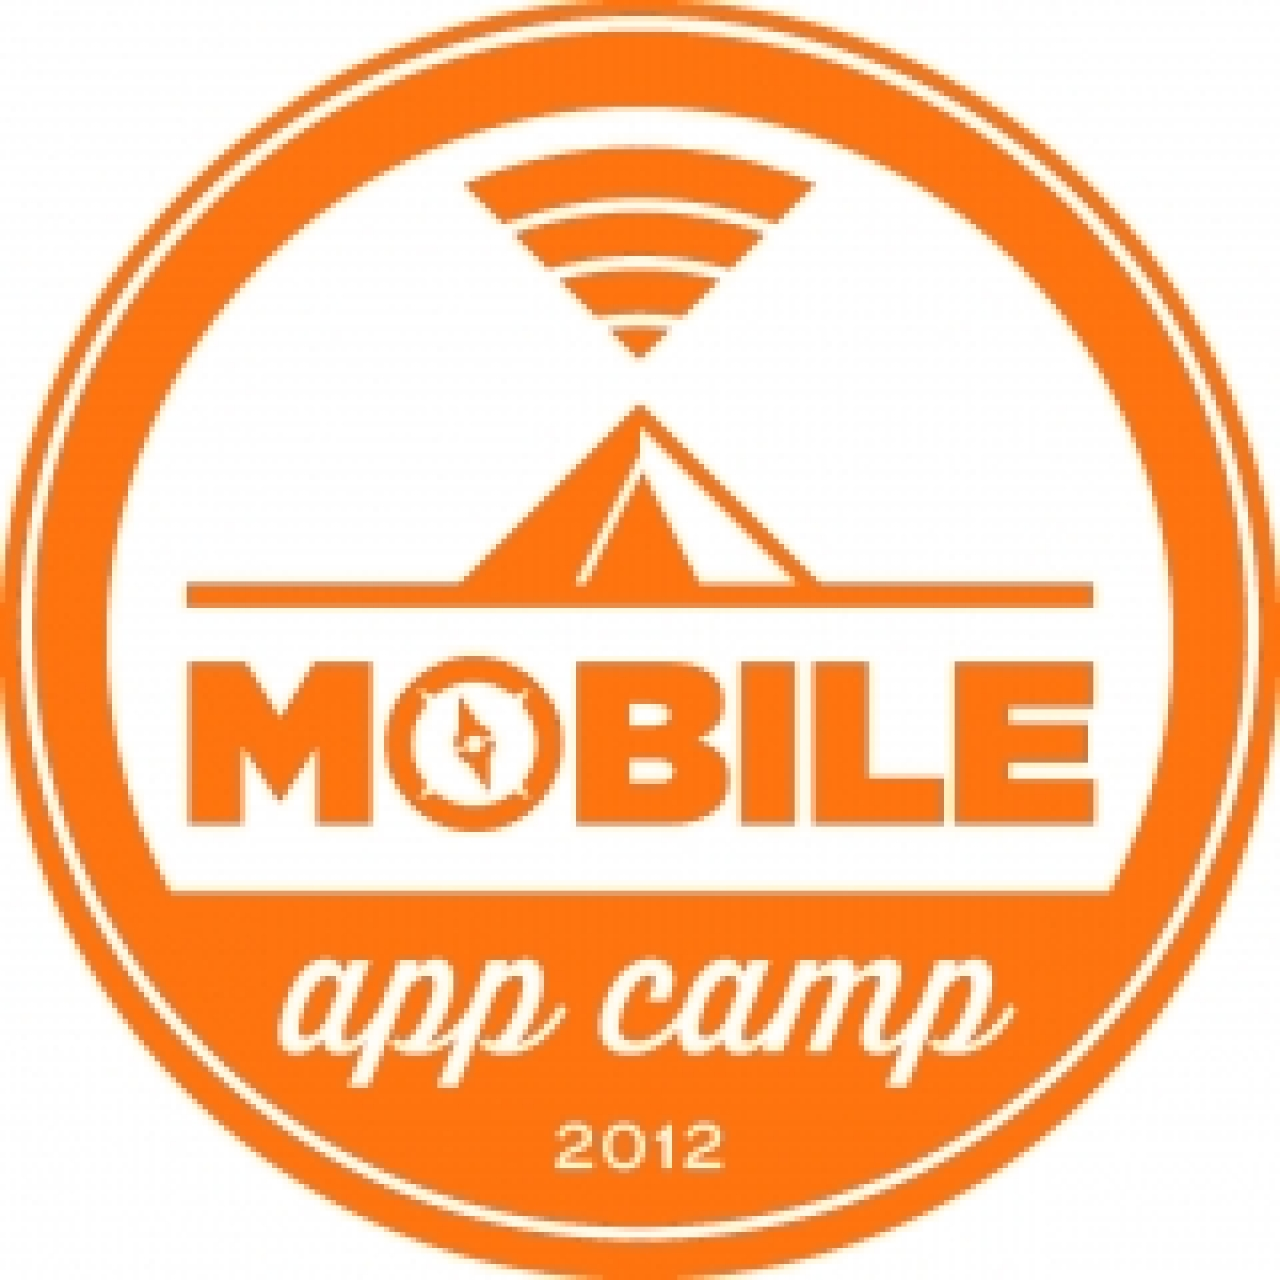 Mobile App Camp Poster